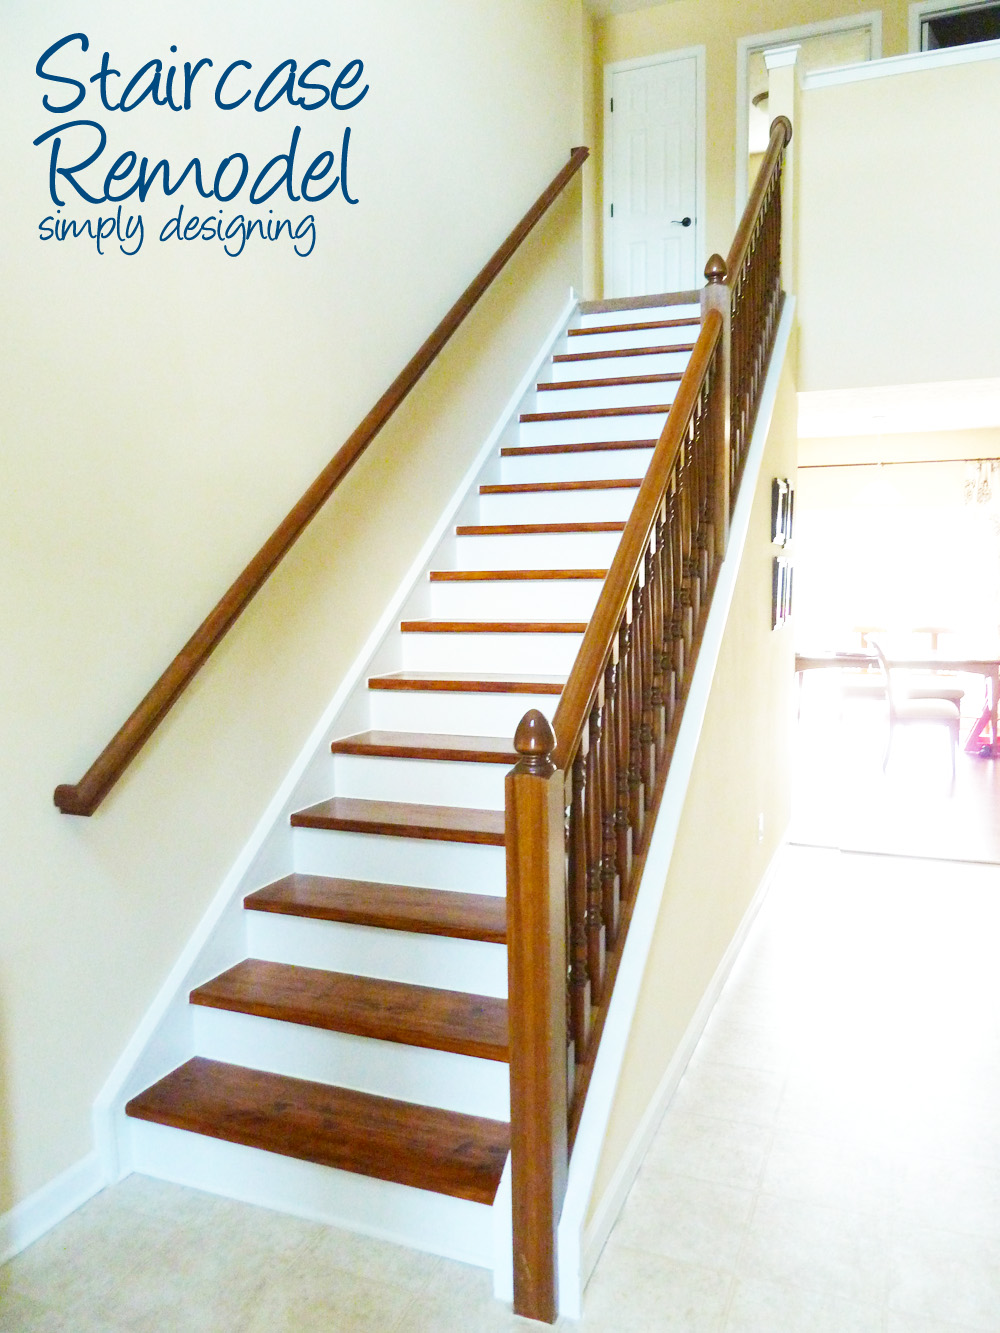 Charming Staircase Remodel | Step By Step Instructions On How To Rip Up Carpet And  Refinish Wood